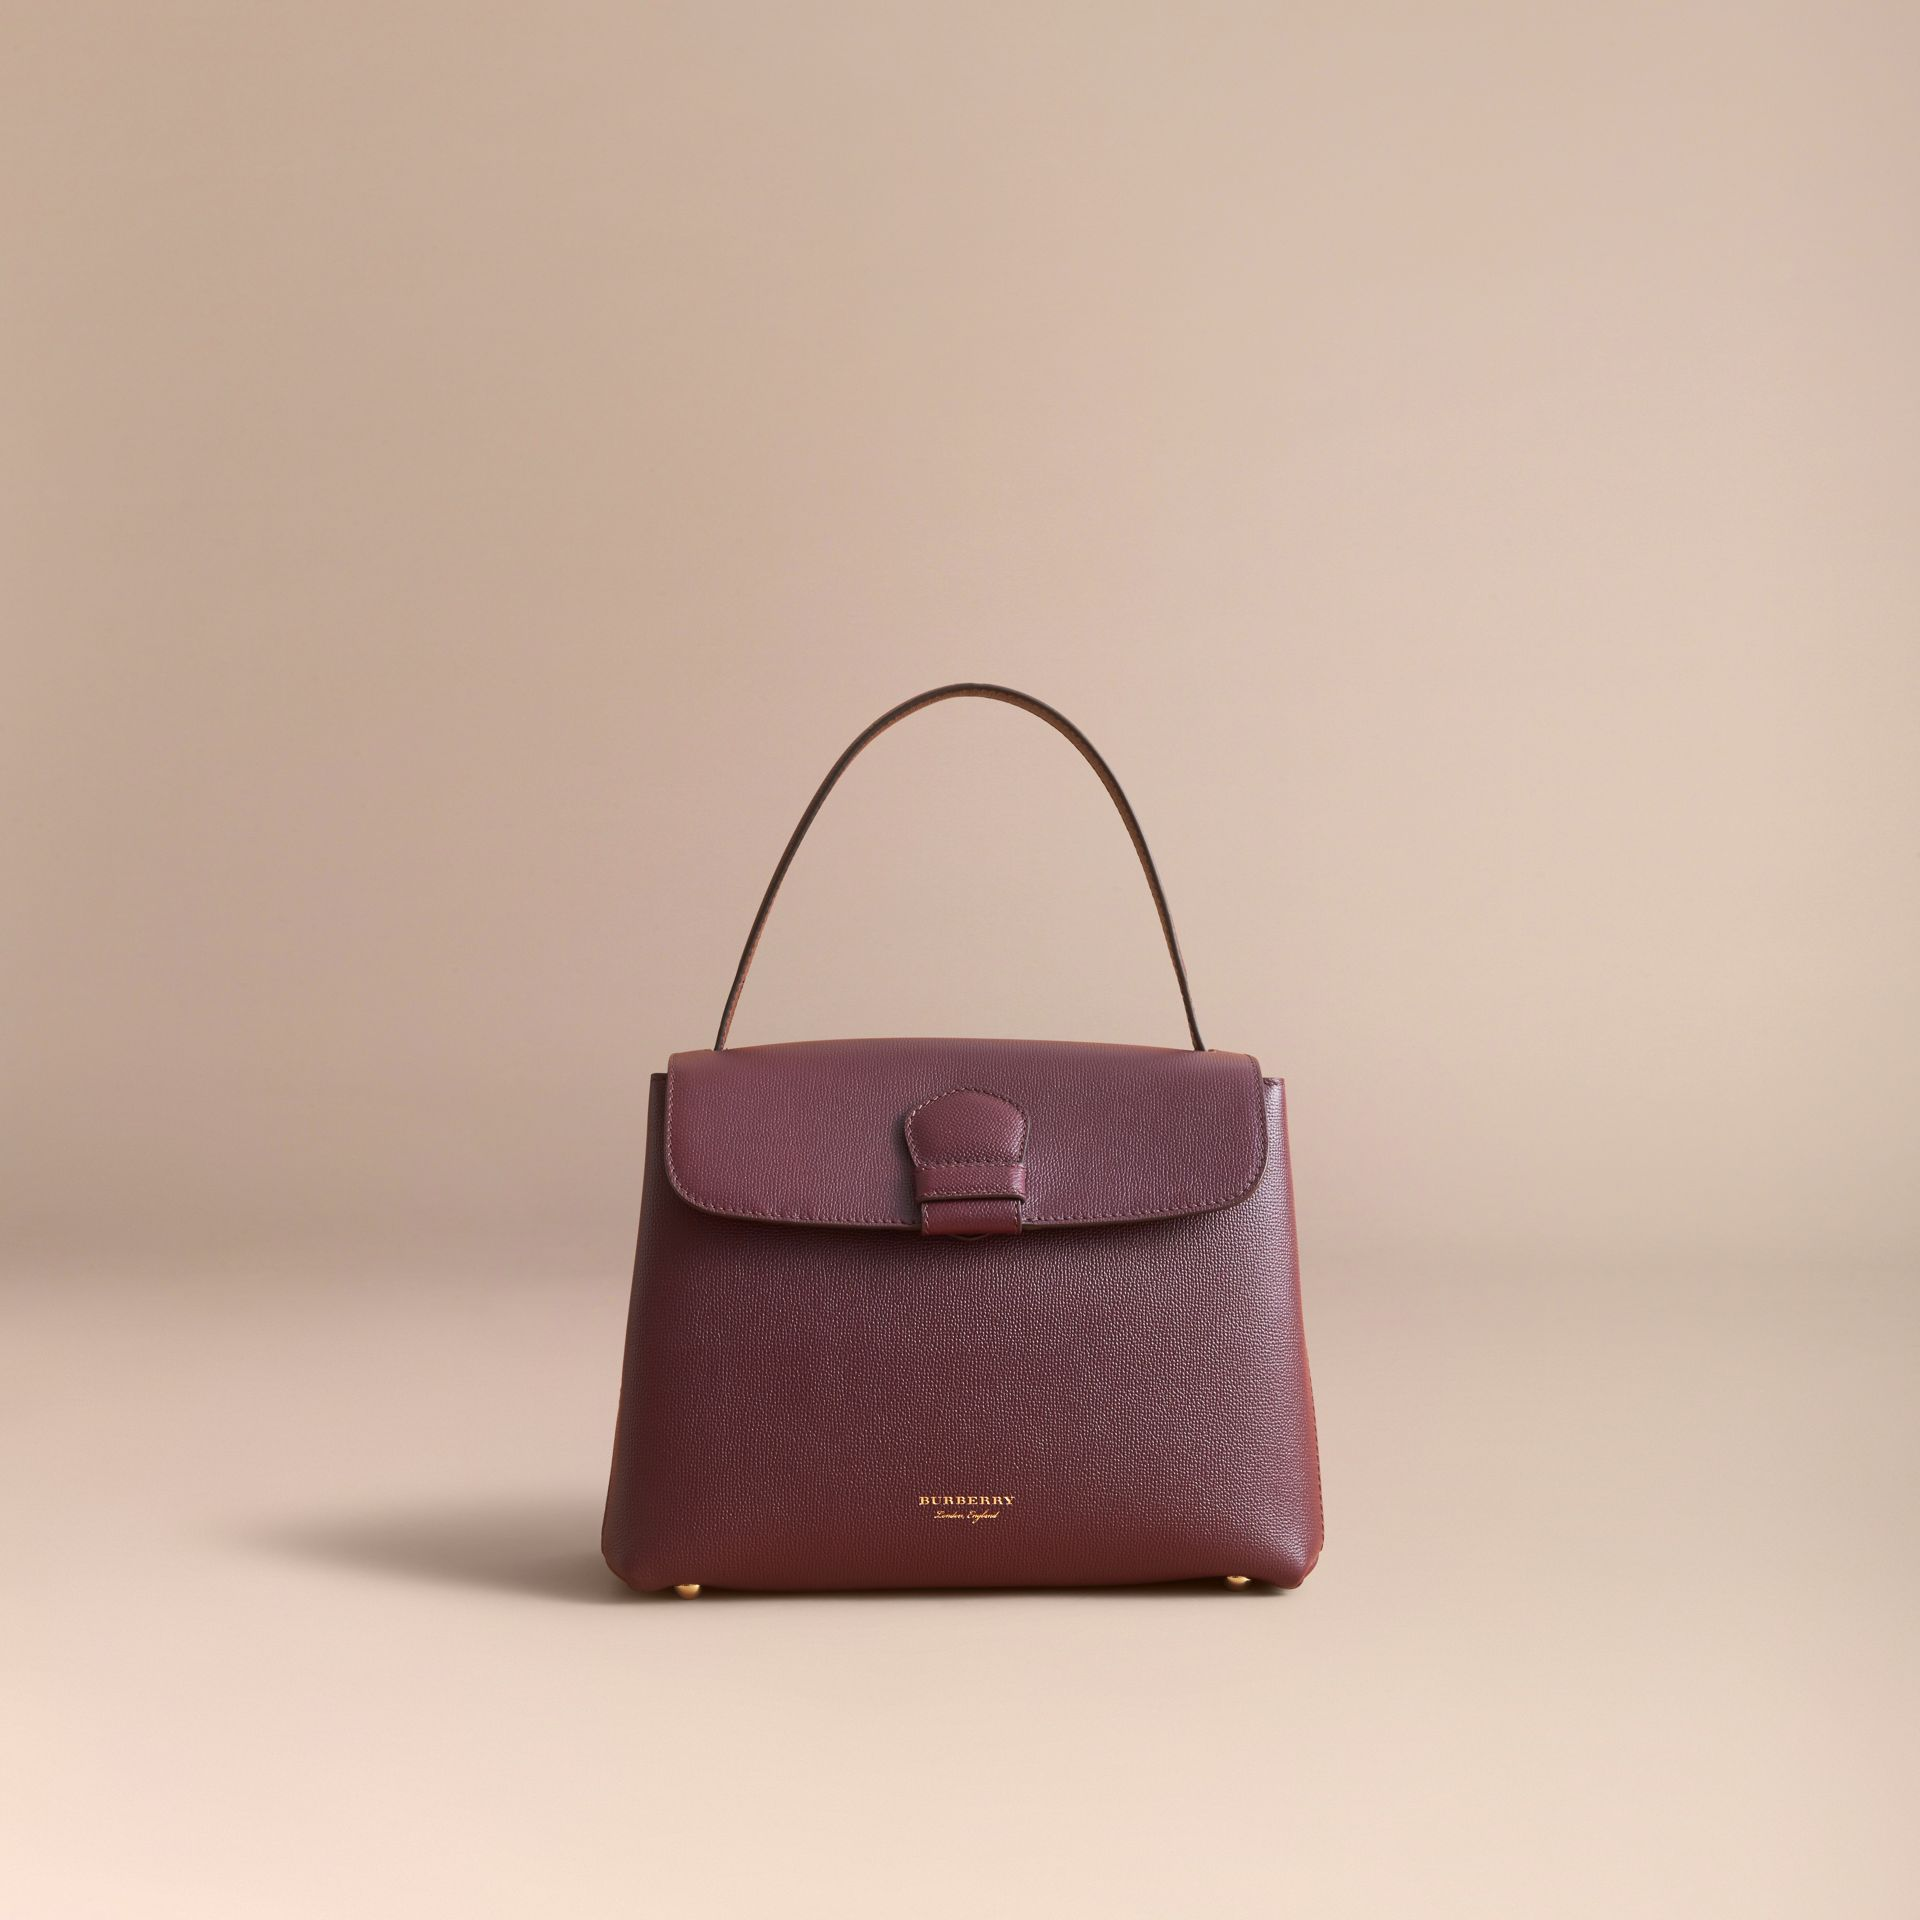 Medium Grainy Leather and House Check Tote Bag in Mahogany Red - Women | Burberry United Kingdom - gallery image 8